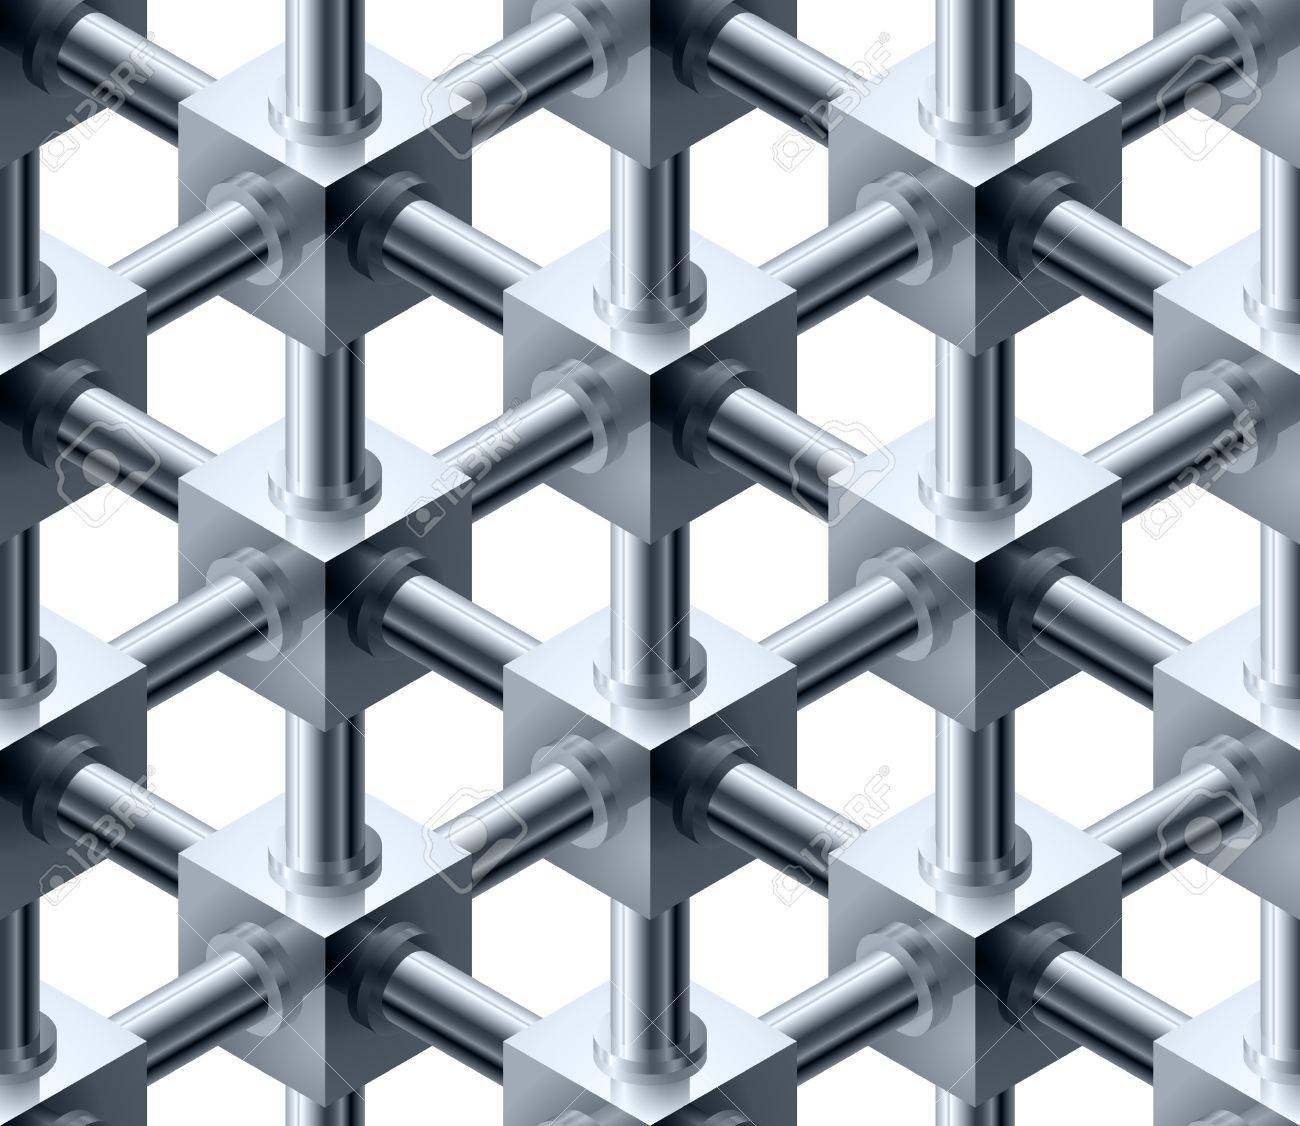 Crystalline cubes seamless pattern - vector background for continuous replicate. See more seamlessly backgrounds in my portfolio. Stock Vector - 10273364